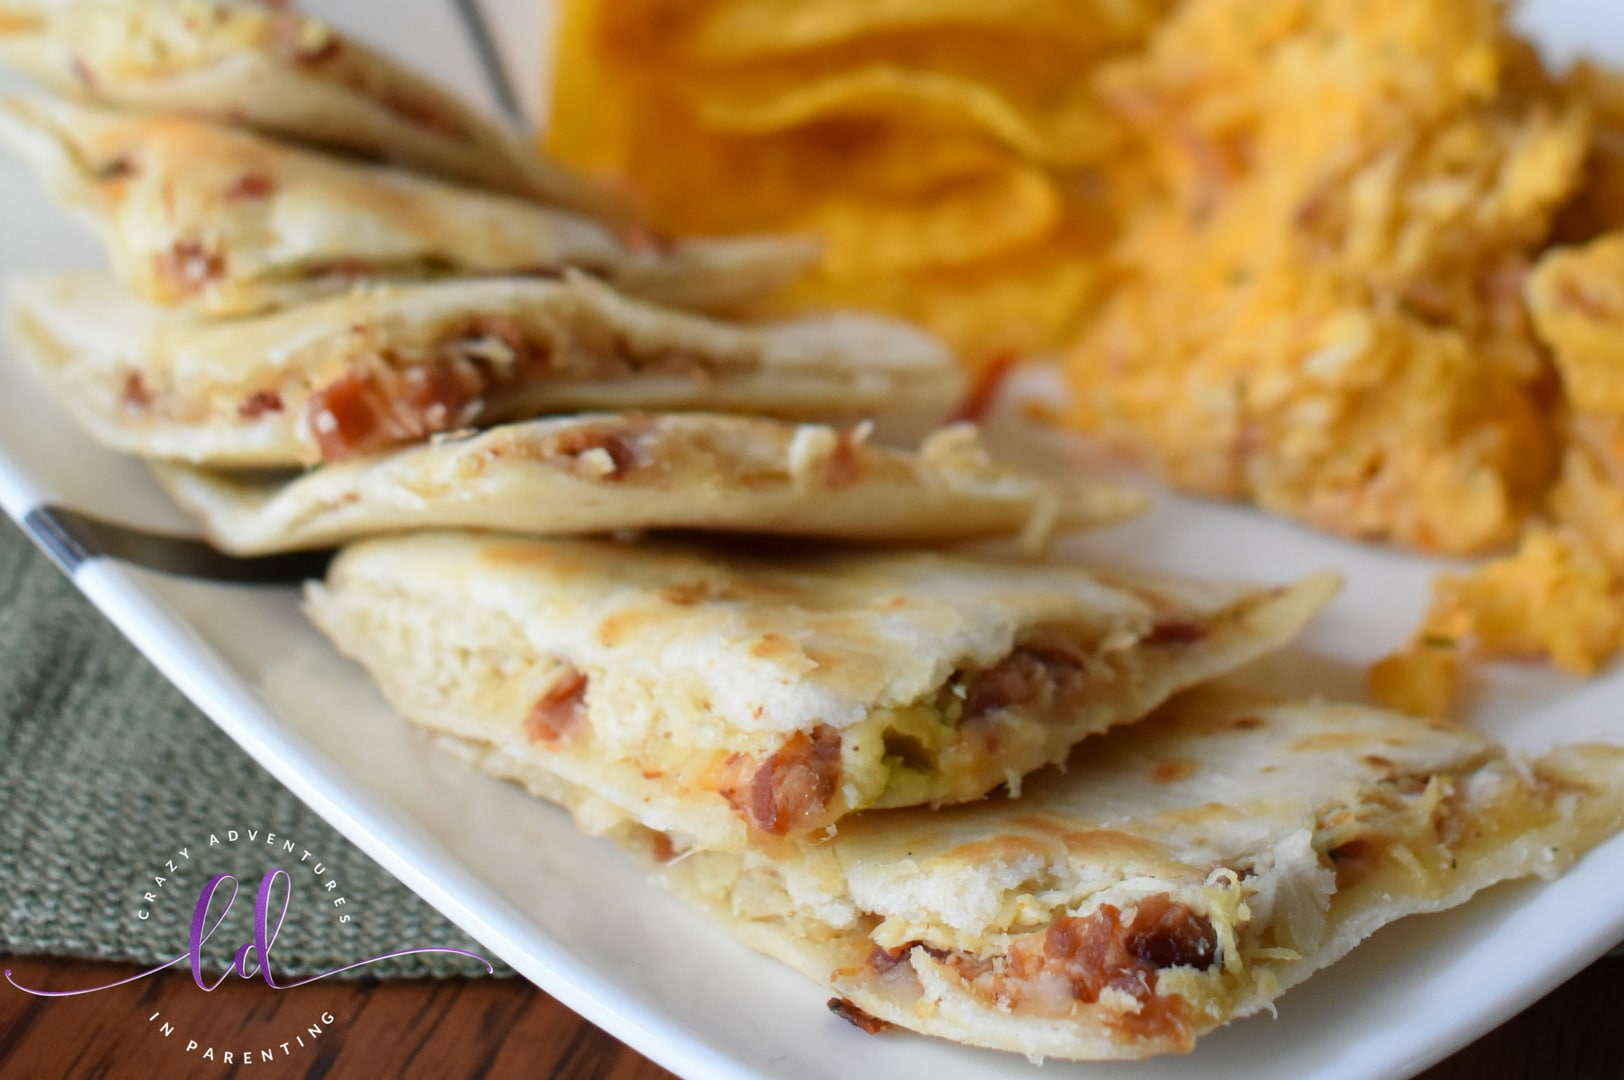 How to Make Jalapeño Chicken Bacon Ranch Quesadillas